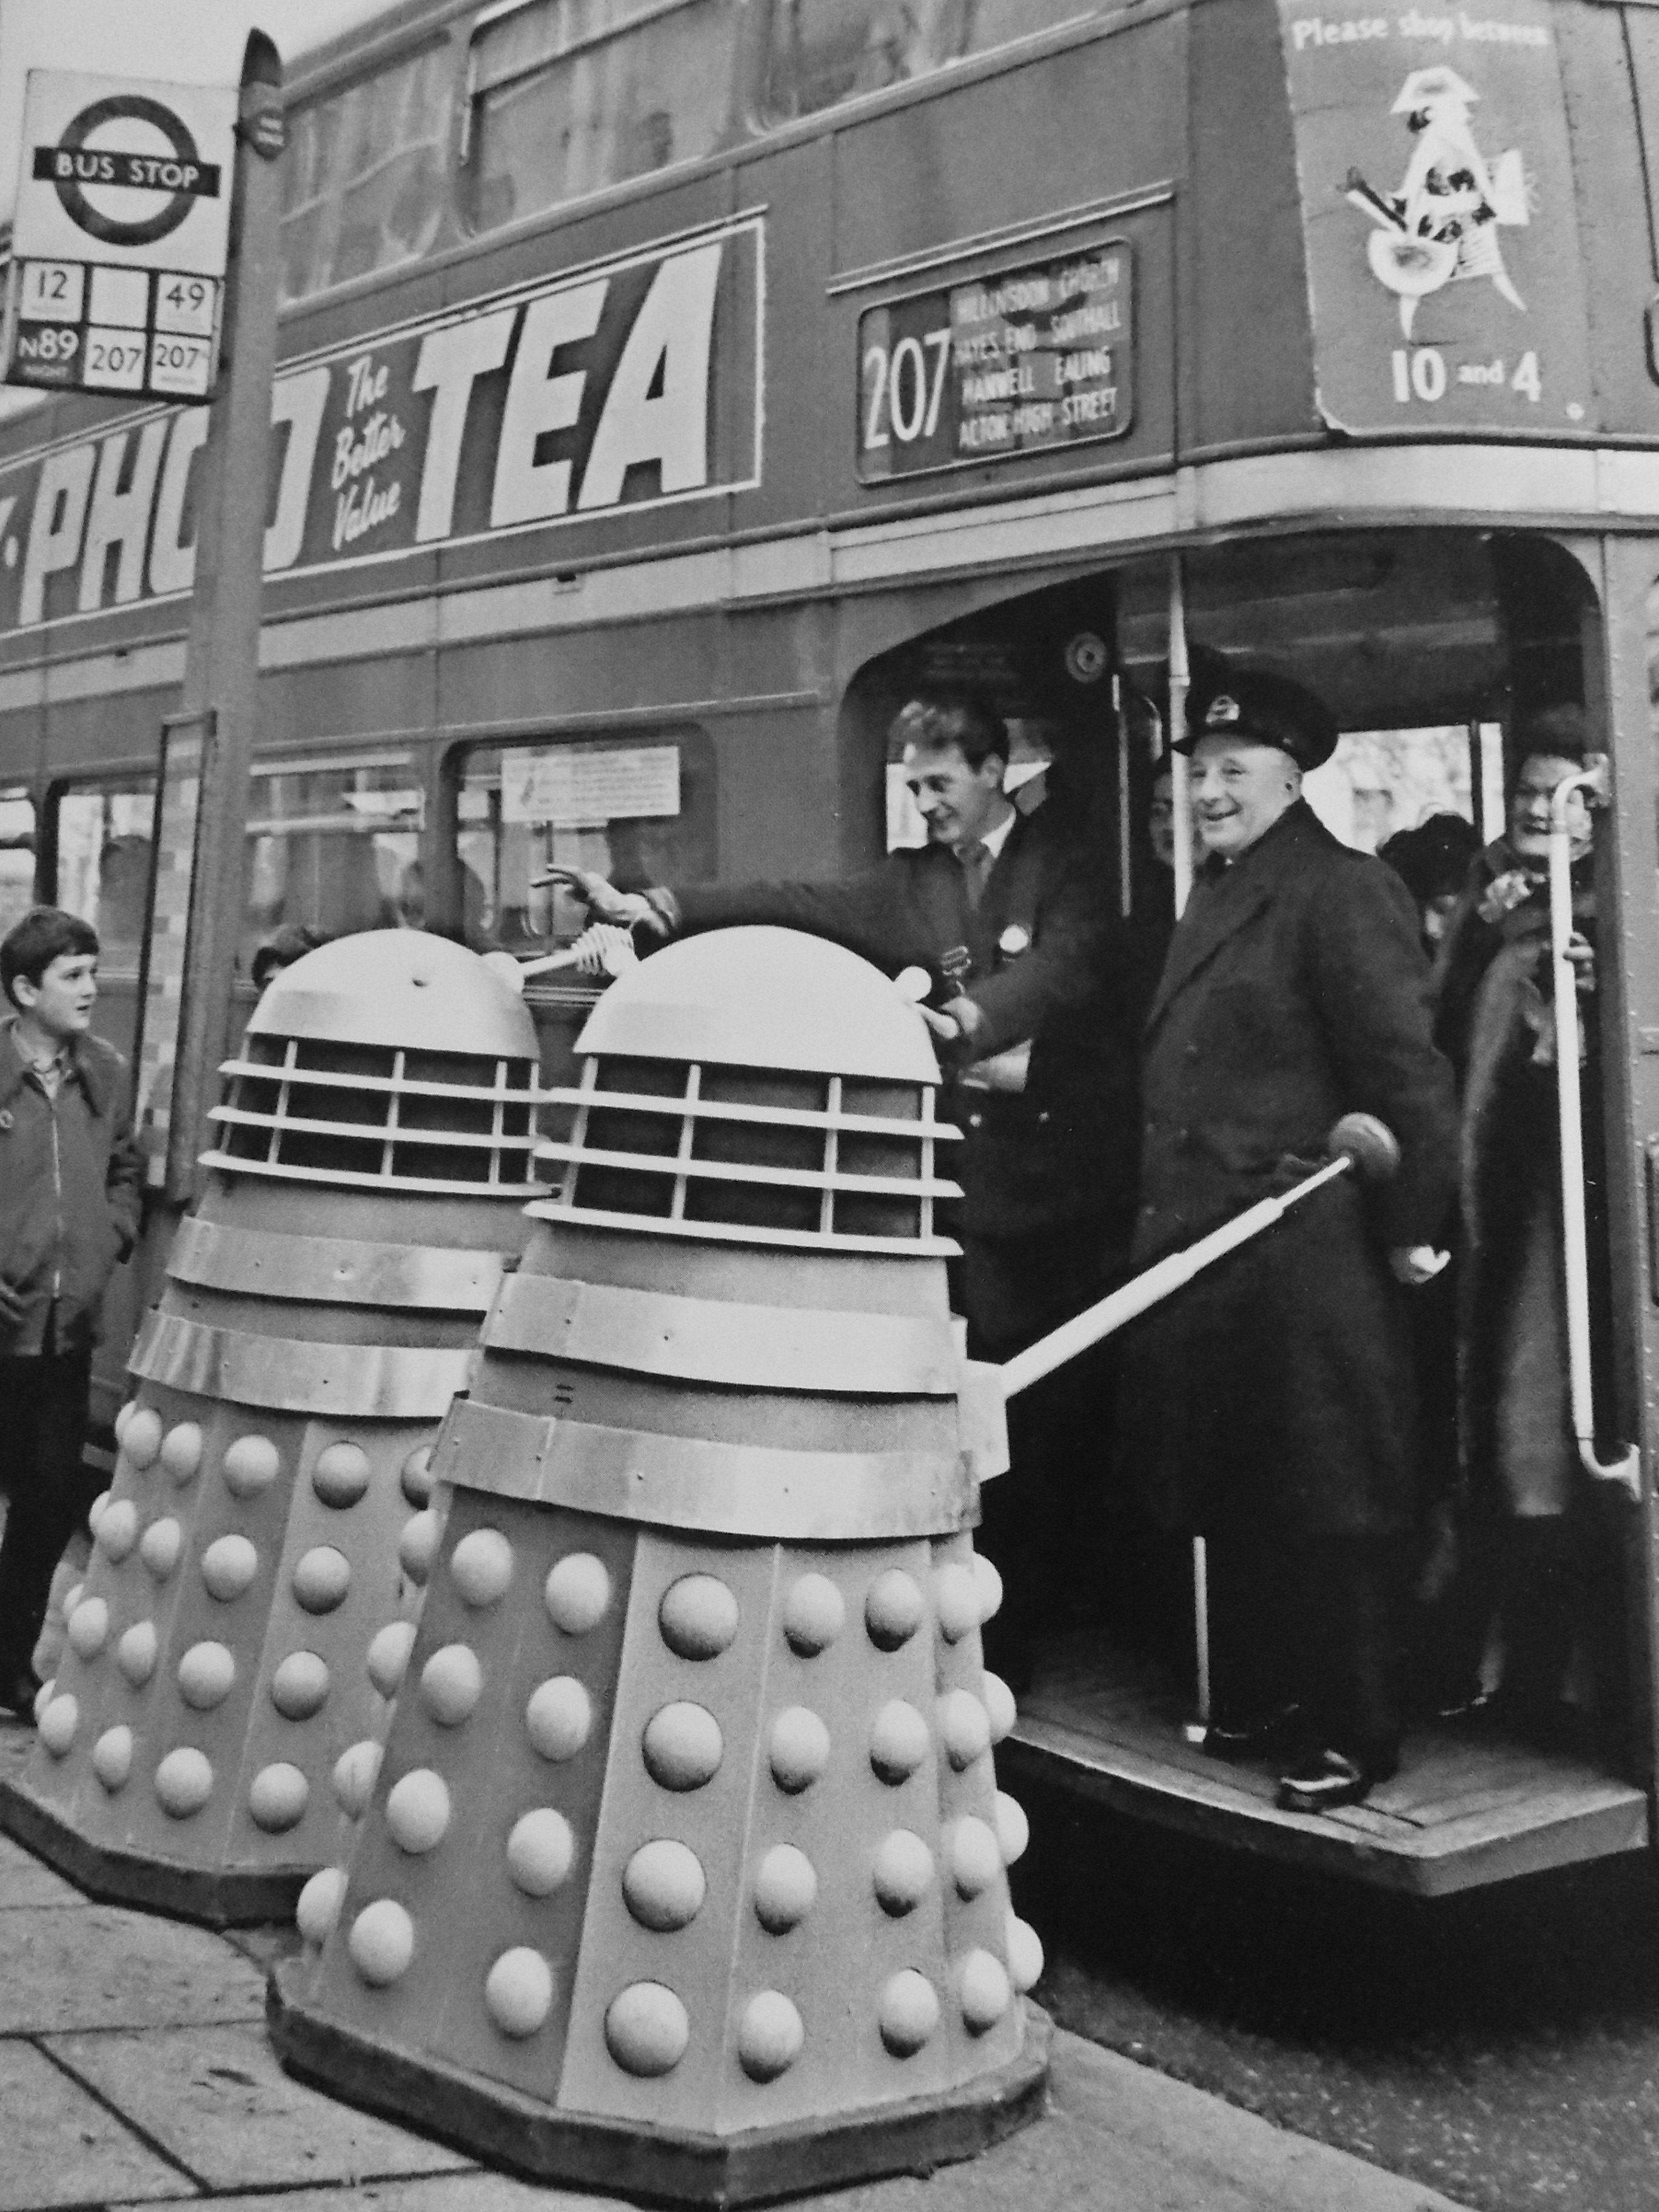 A number 207 London bus being high jacked  by two Daleks......Exterminate exterminate!!